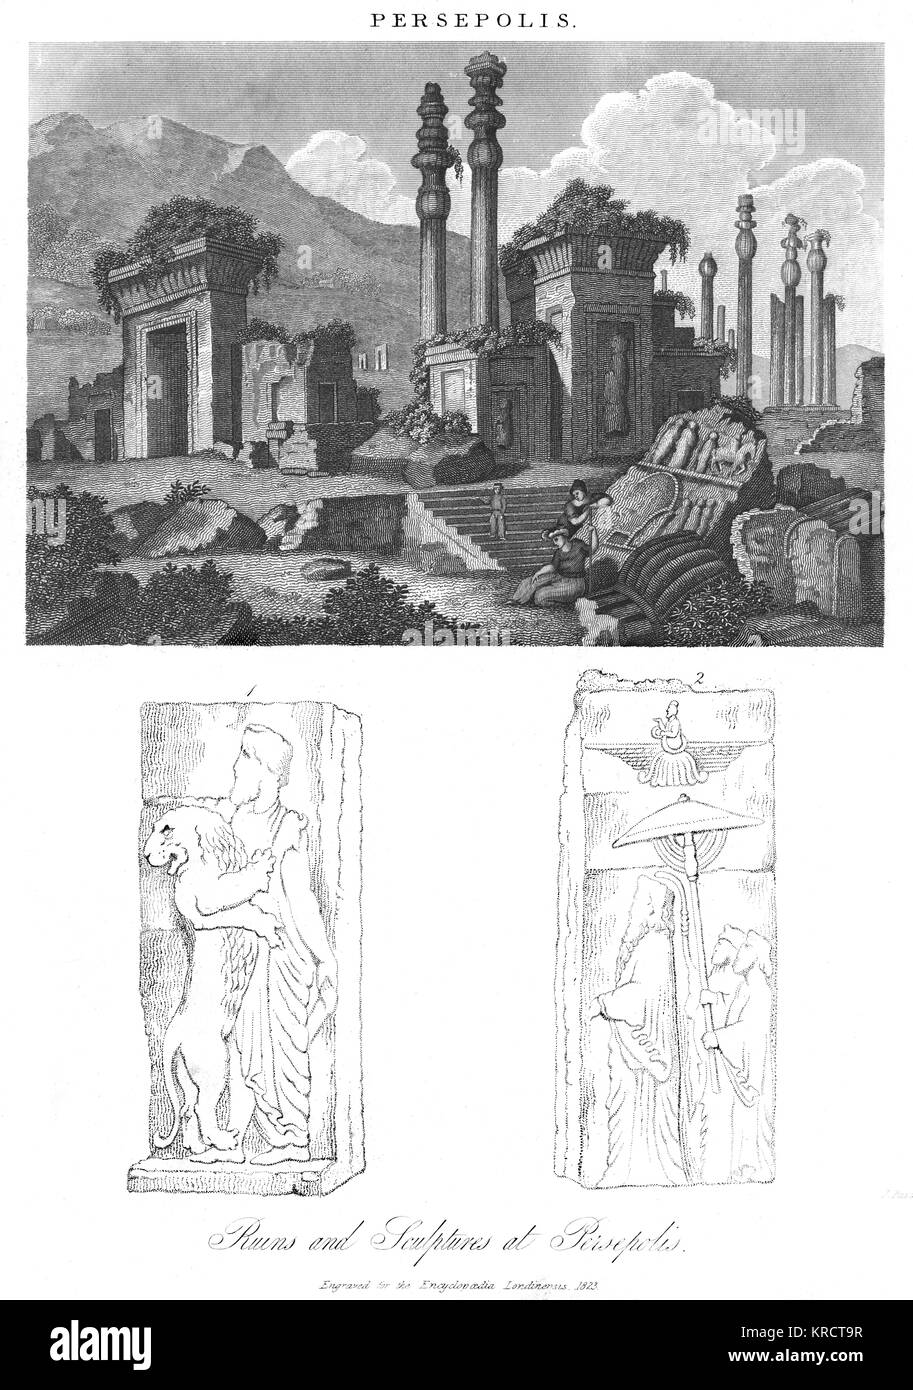 A fairly romanticised view of the ruins of Persepolis, prior to excavation, most of which was carried out by the - Stock Image